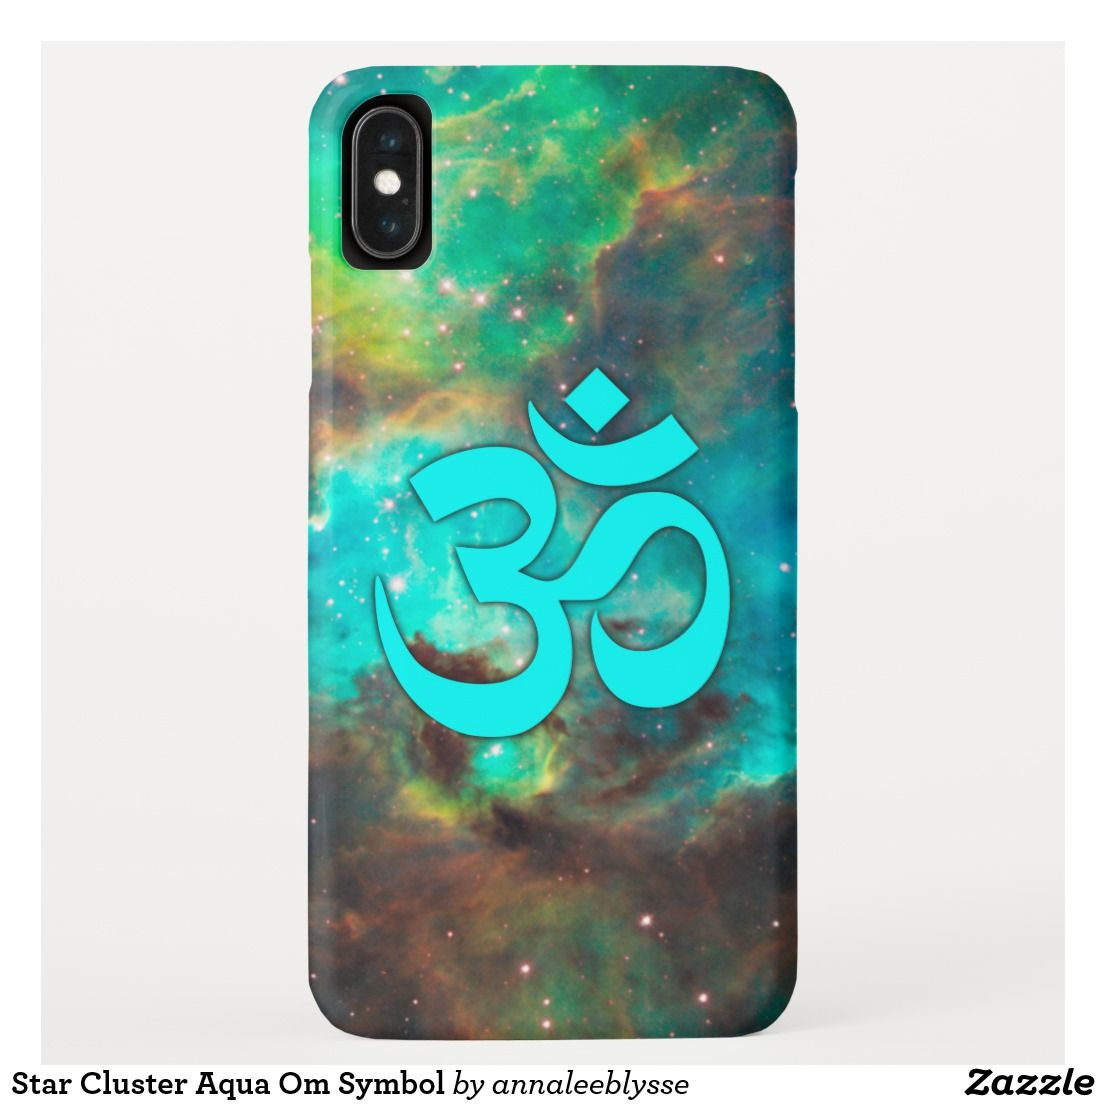 Star Cluster Aqua Om Symbol Iphone Xs Max Case